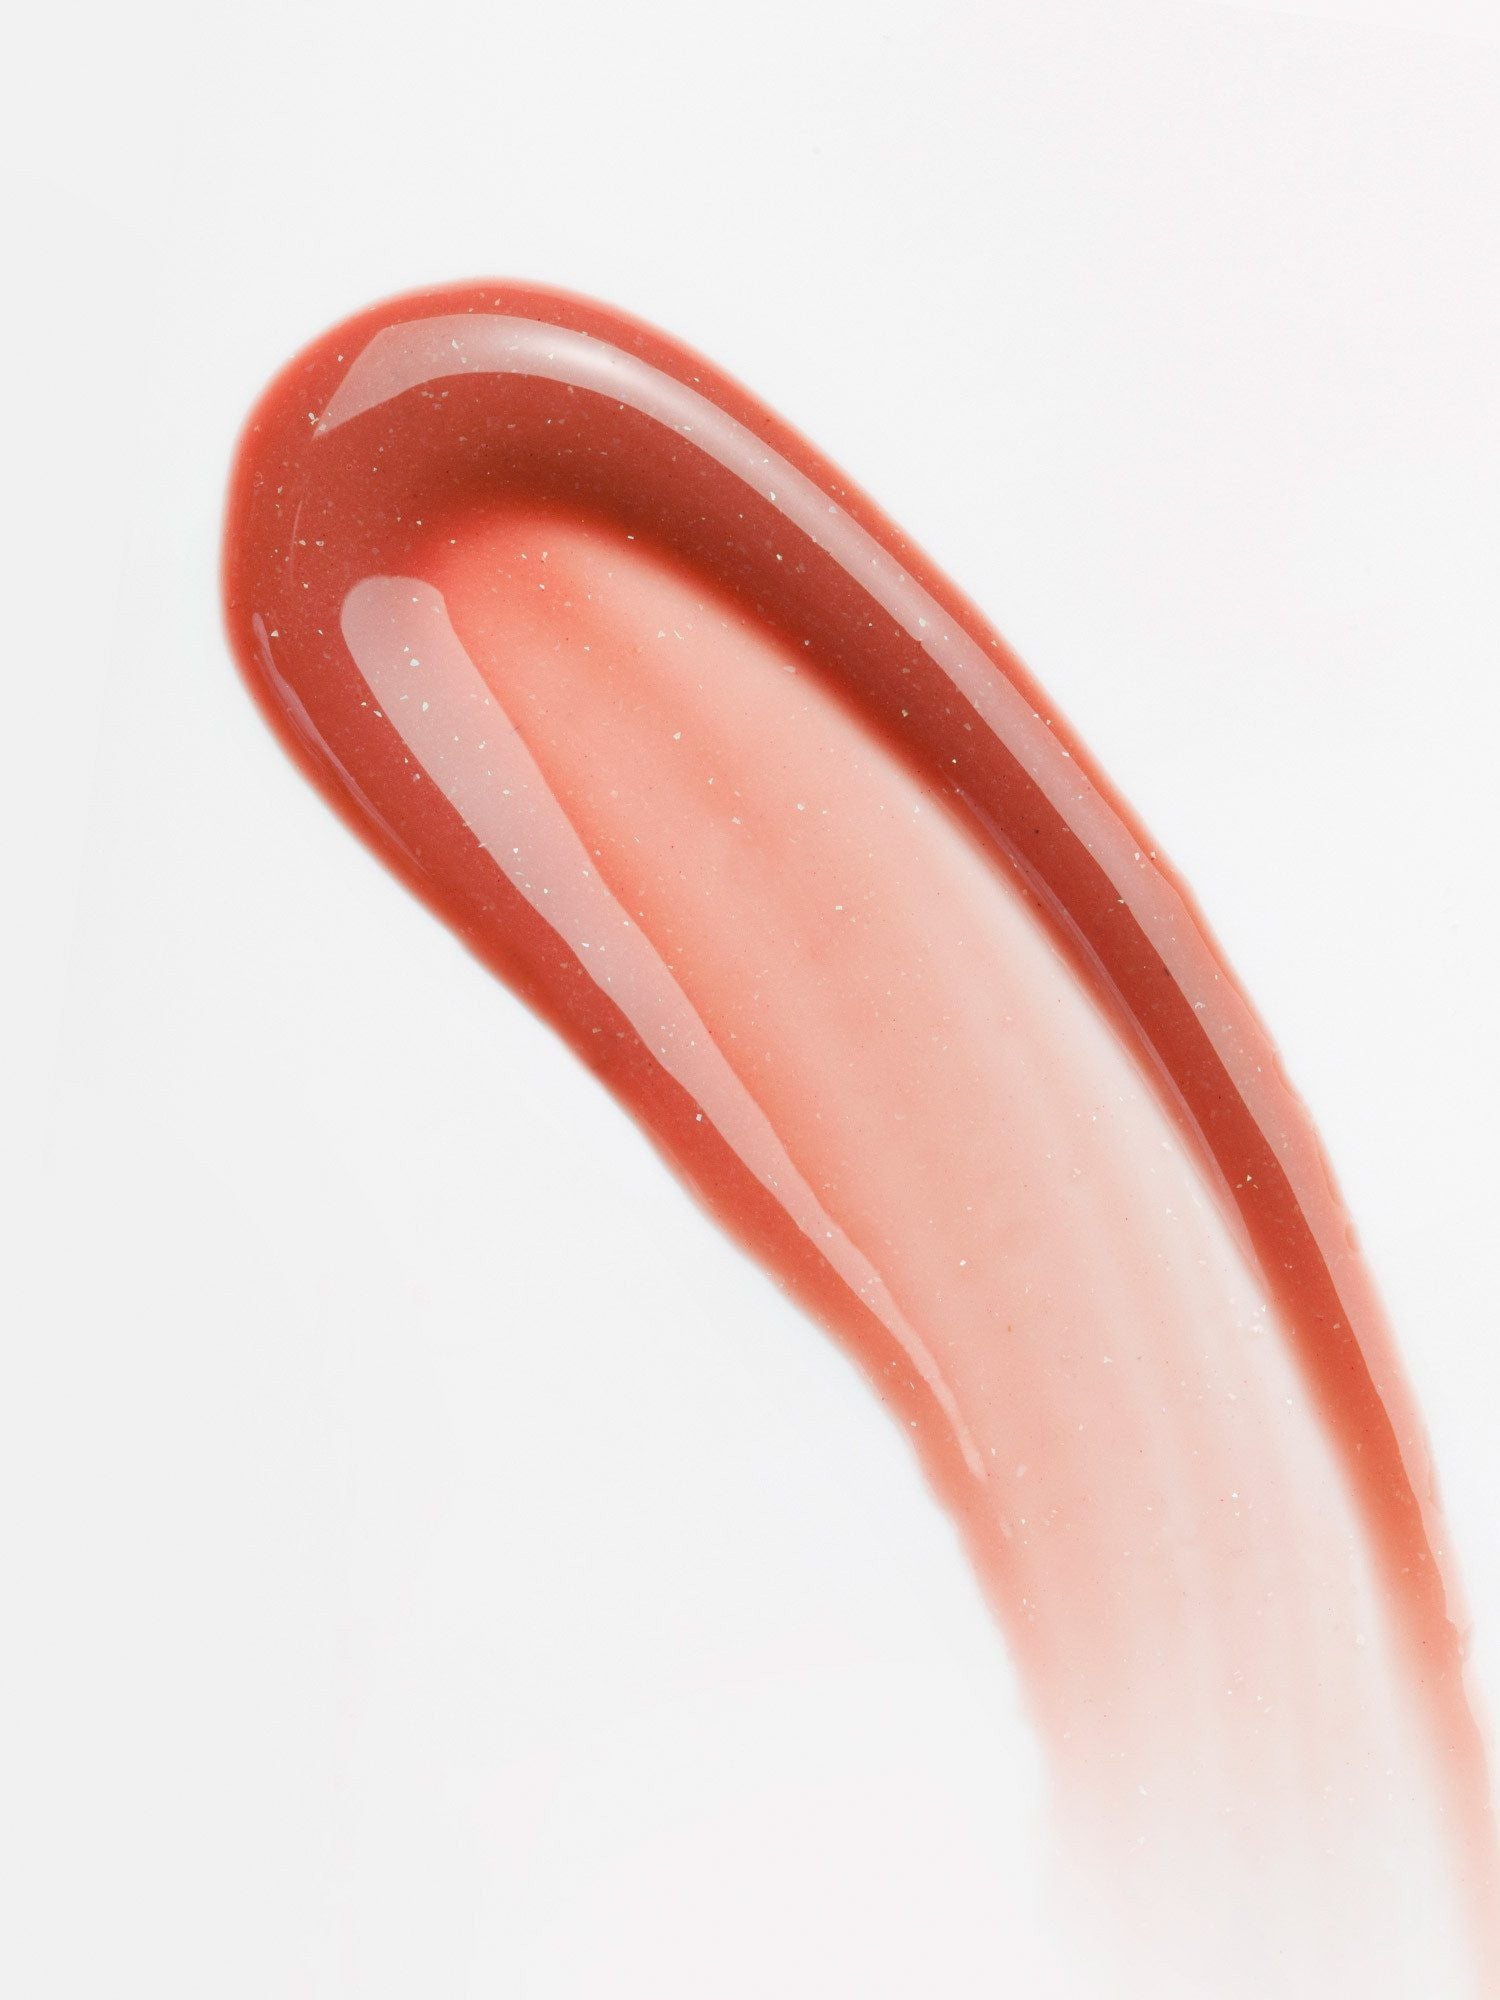 Naked Shine Lip Gloss Gloss by Naked Princess